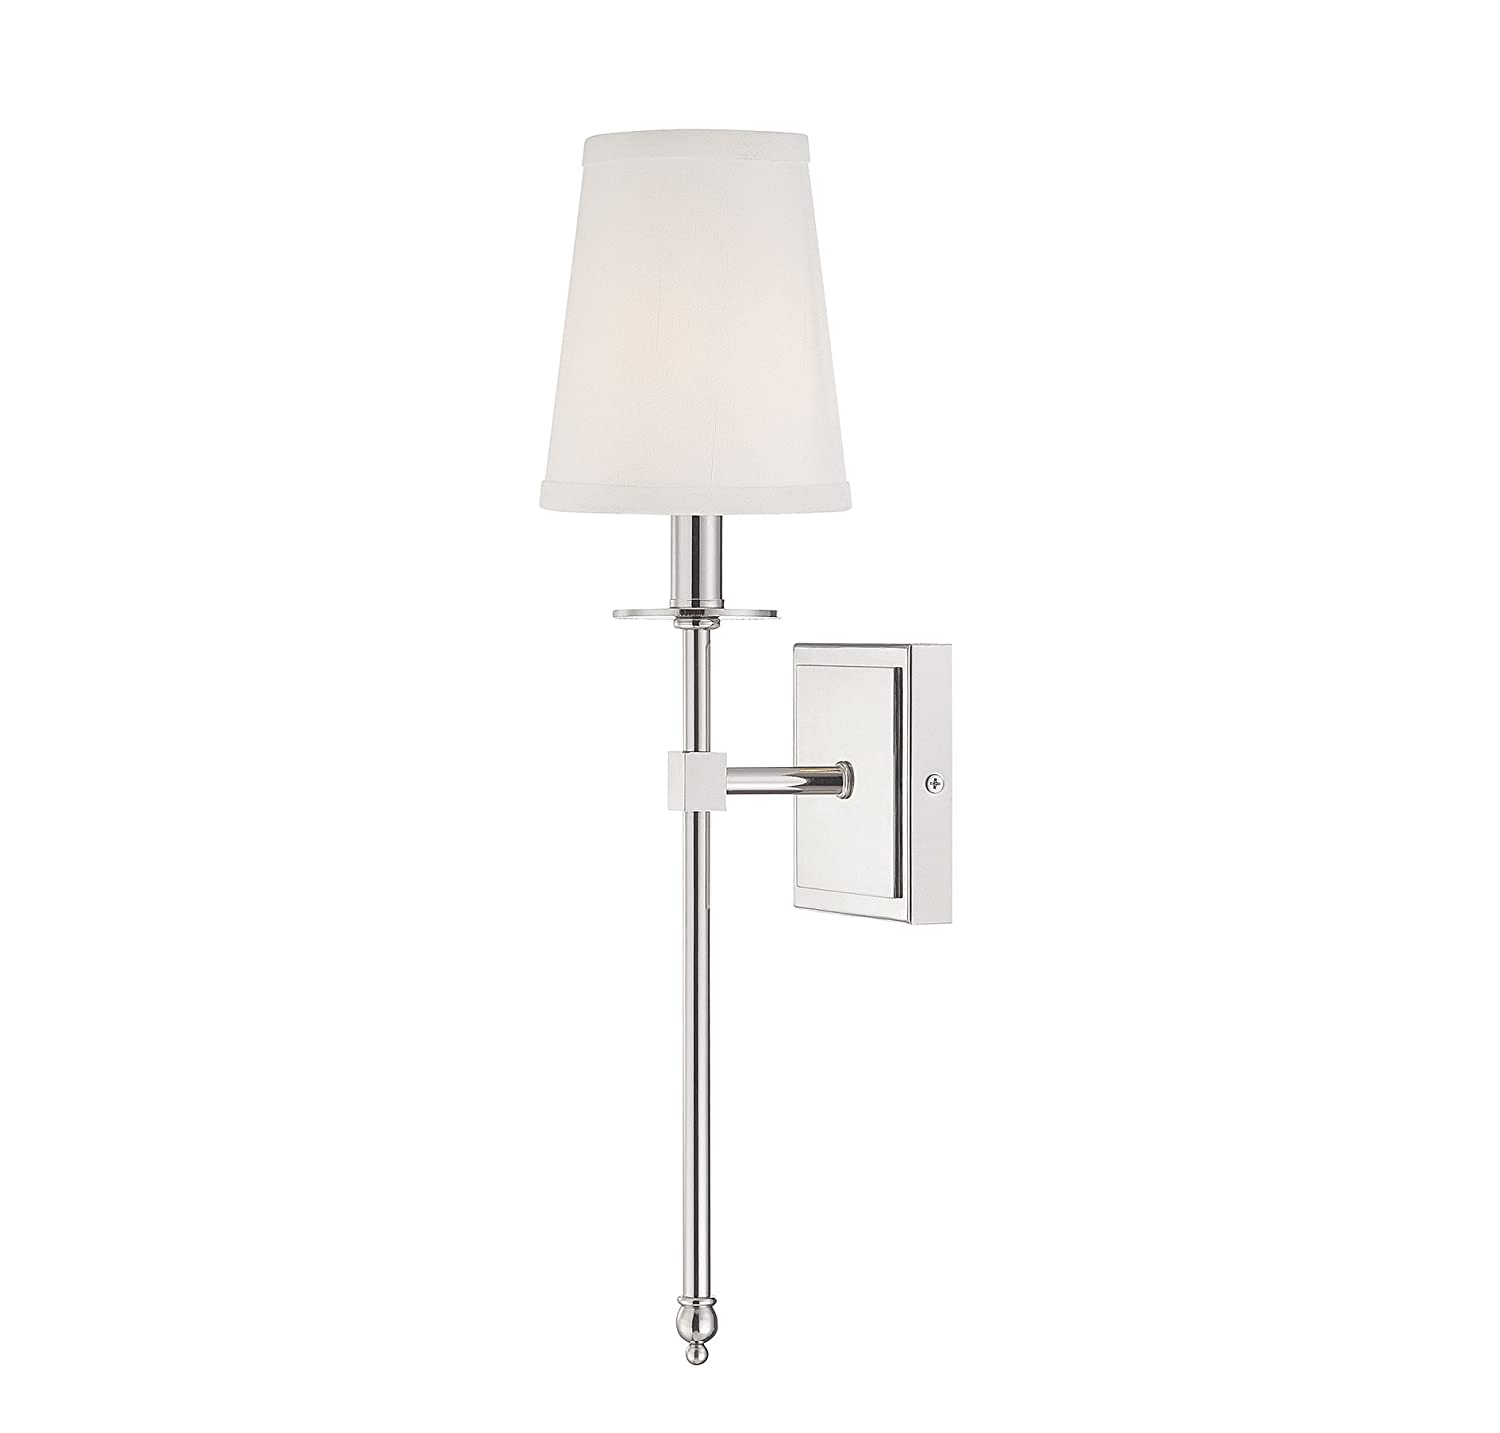 Savoy House Monroe Light Sconce Polished Nickel - Polished nickel bathroom wall sconces